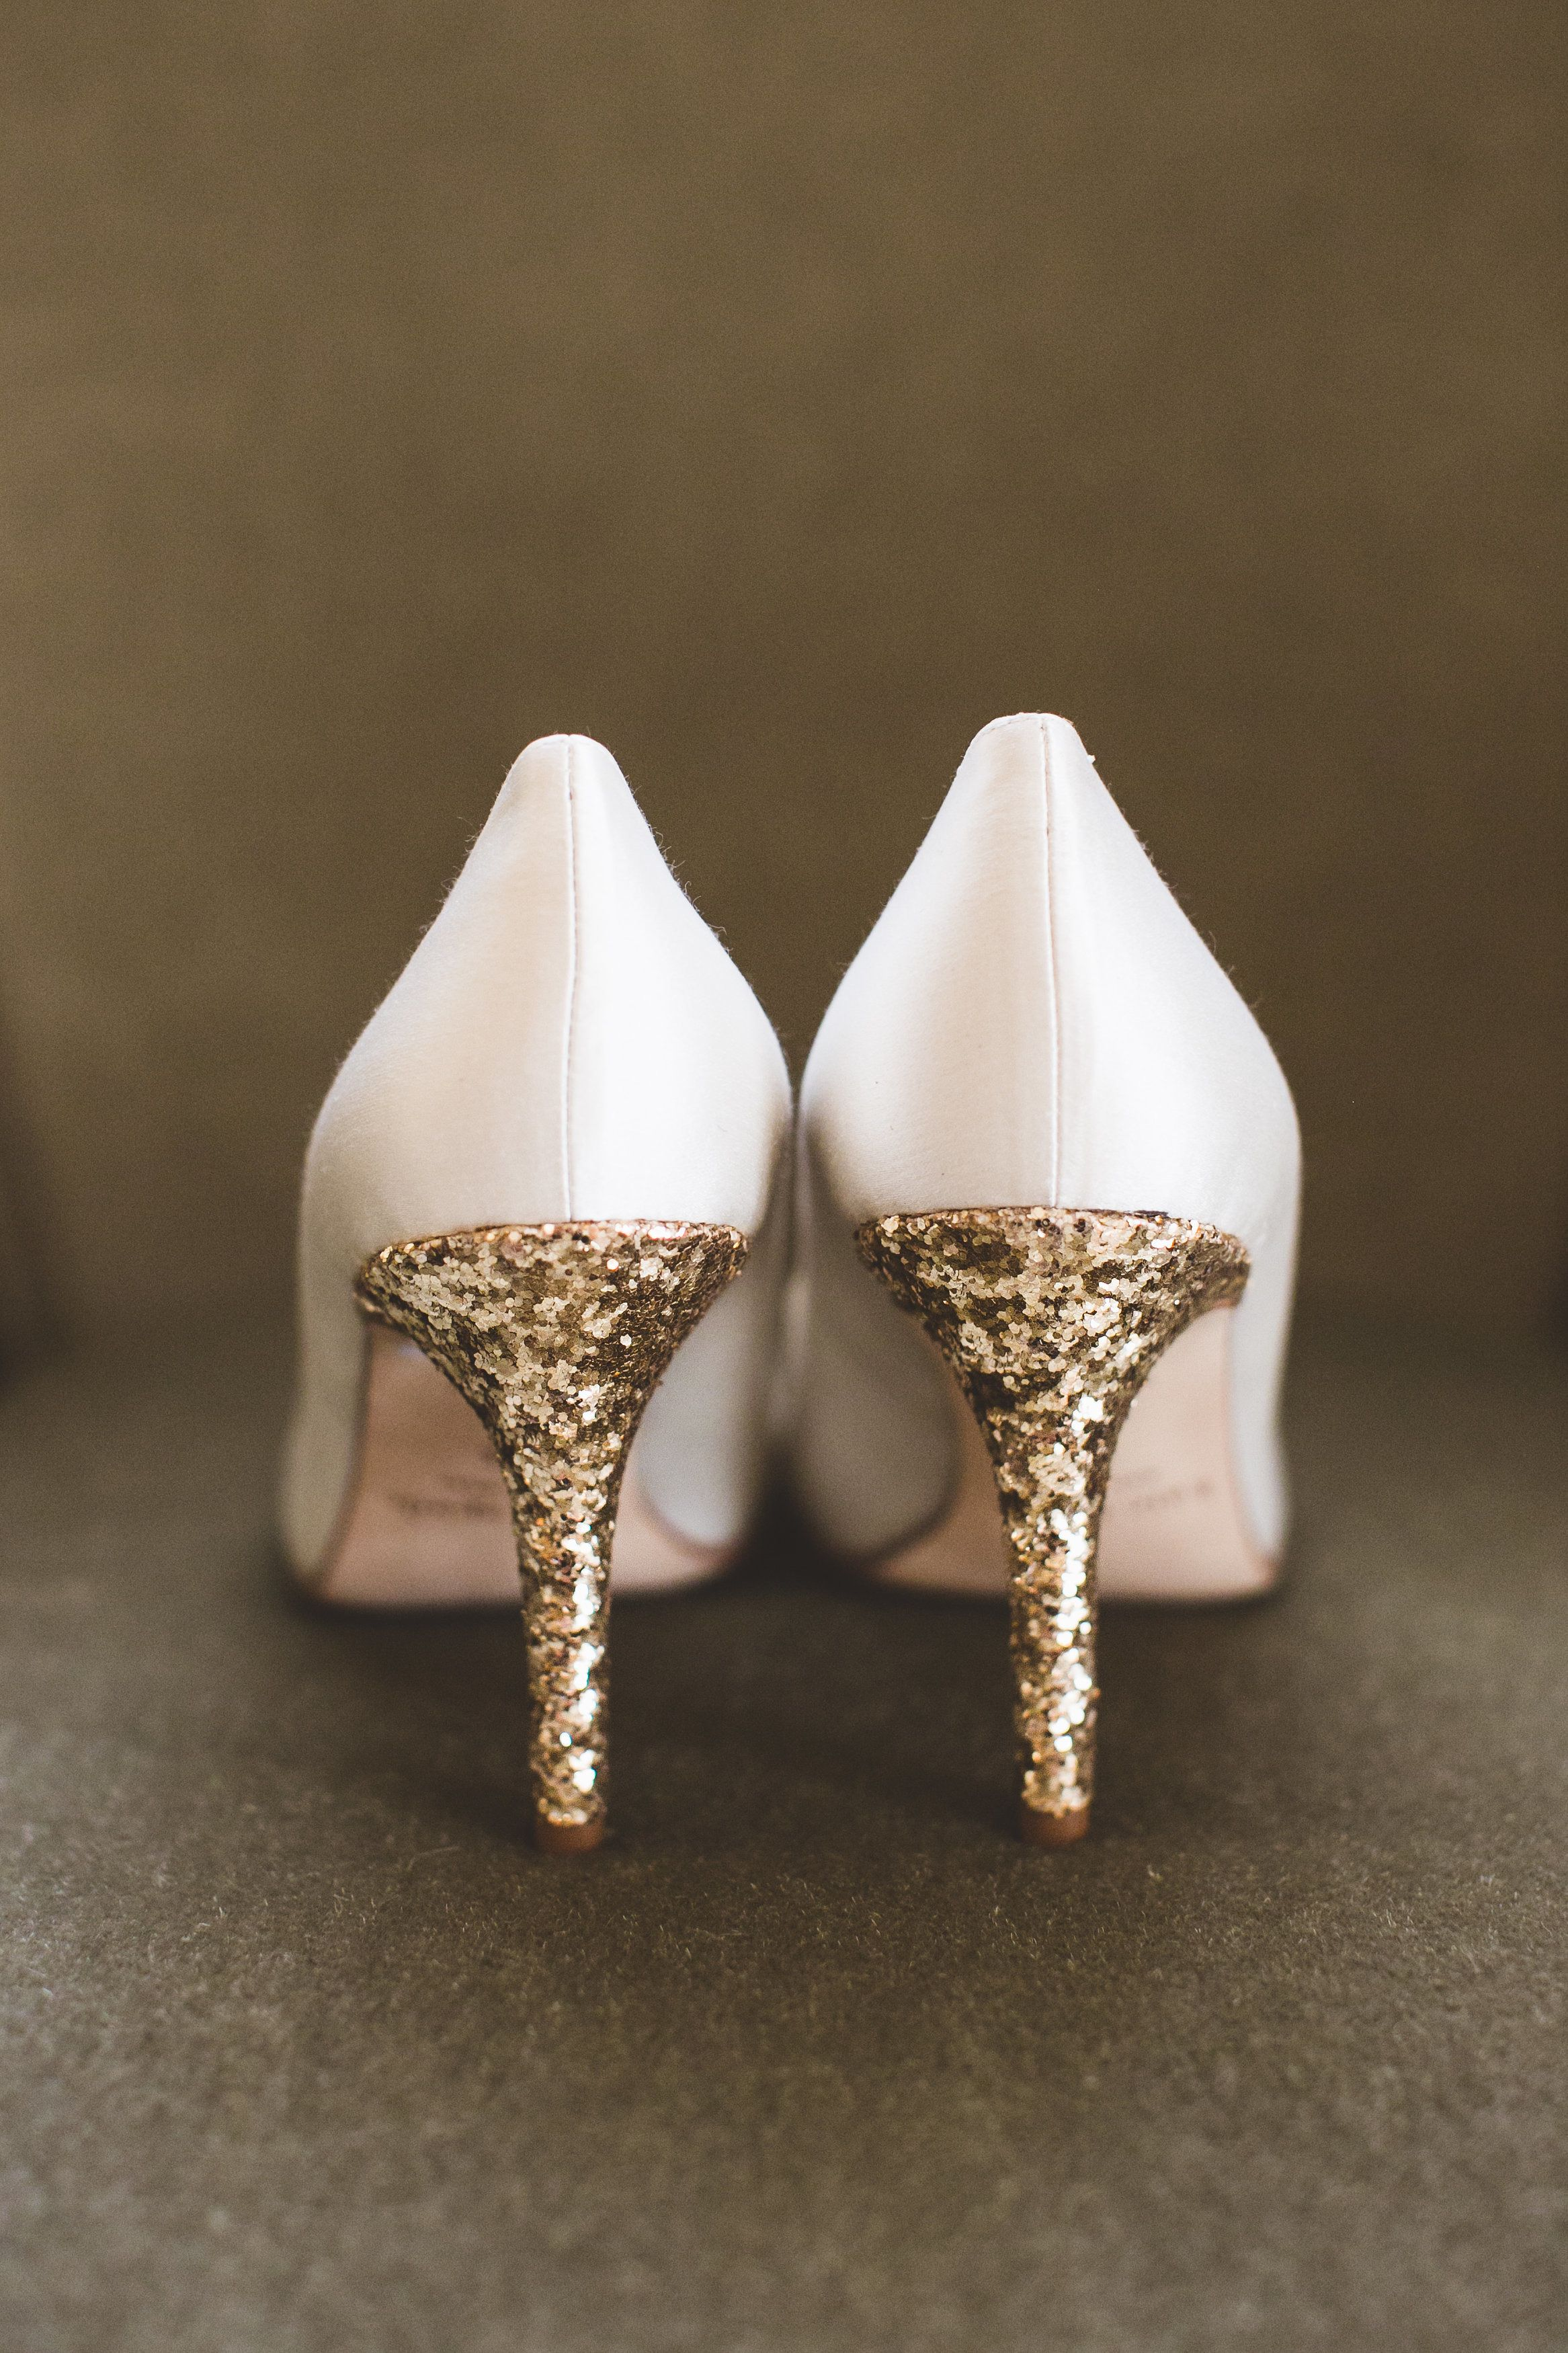 08527afbcb2b White pumps with glittery gold heels - such an adorable touch of glam.  Photography  Maria Vicencio Photography - mariavicencio.com  Read More   http